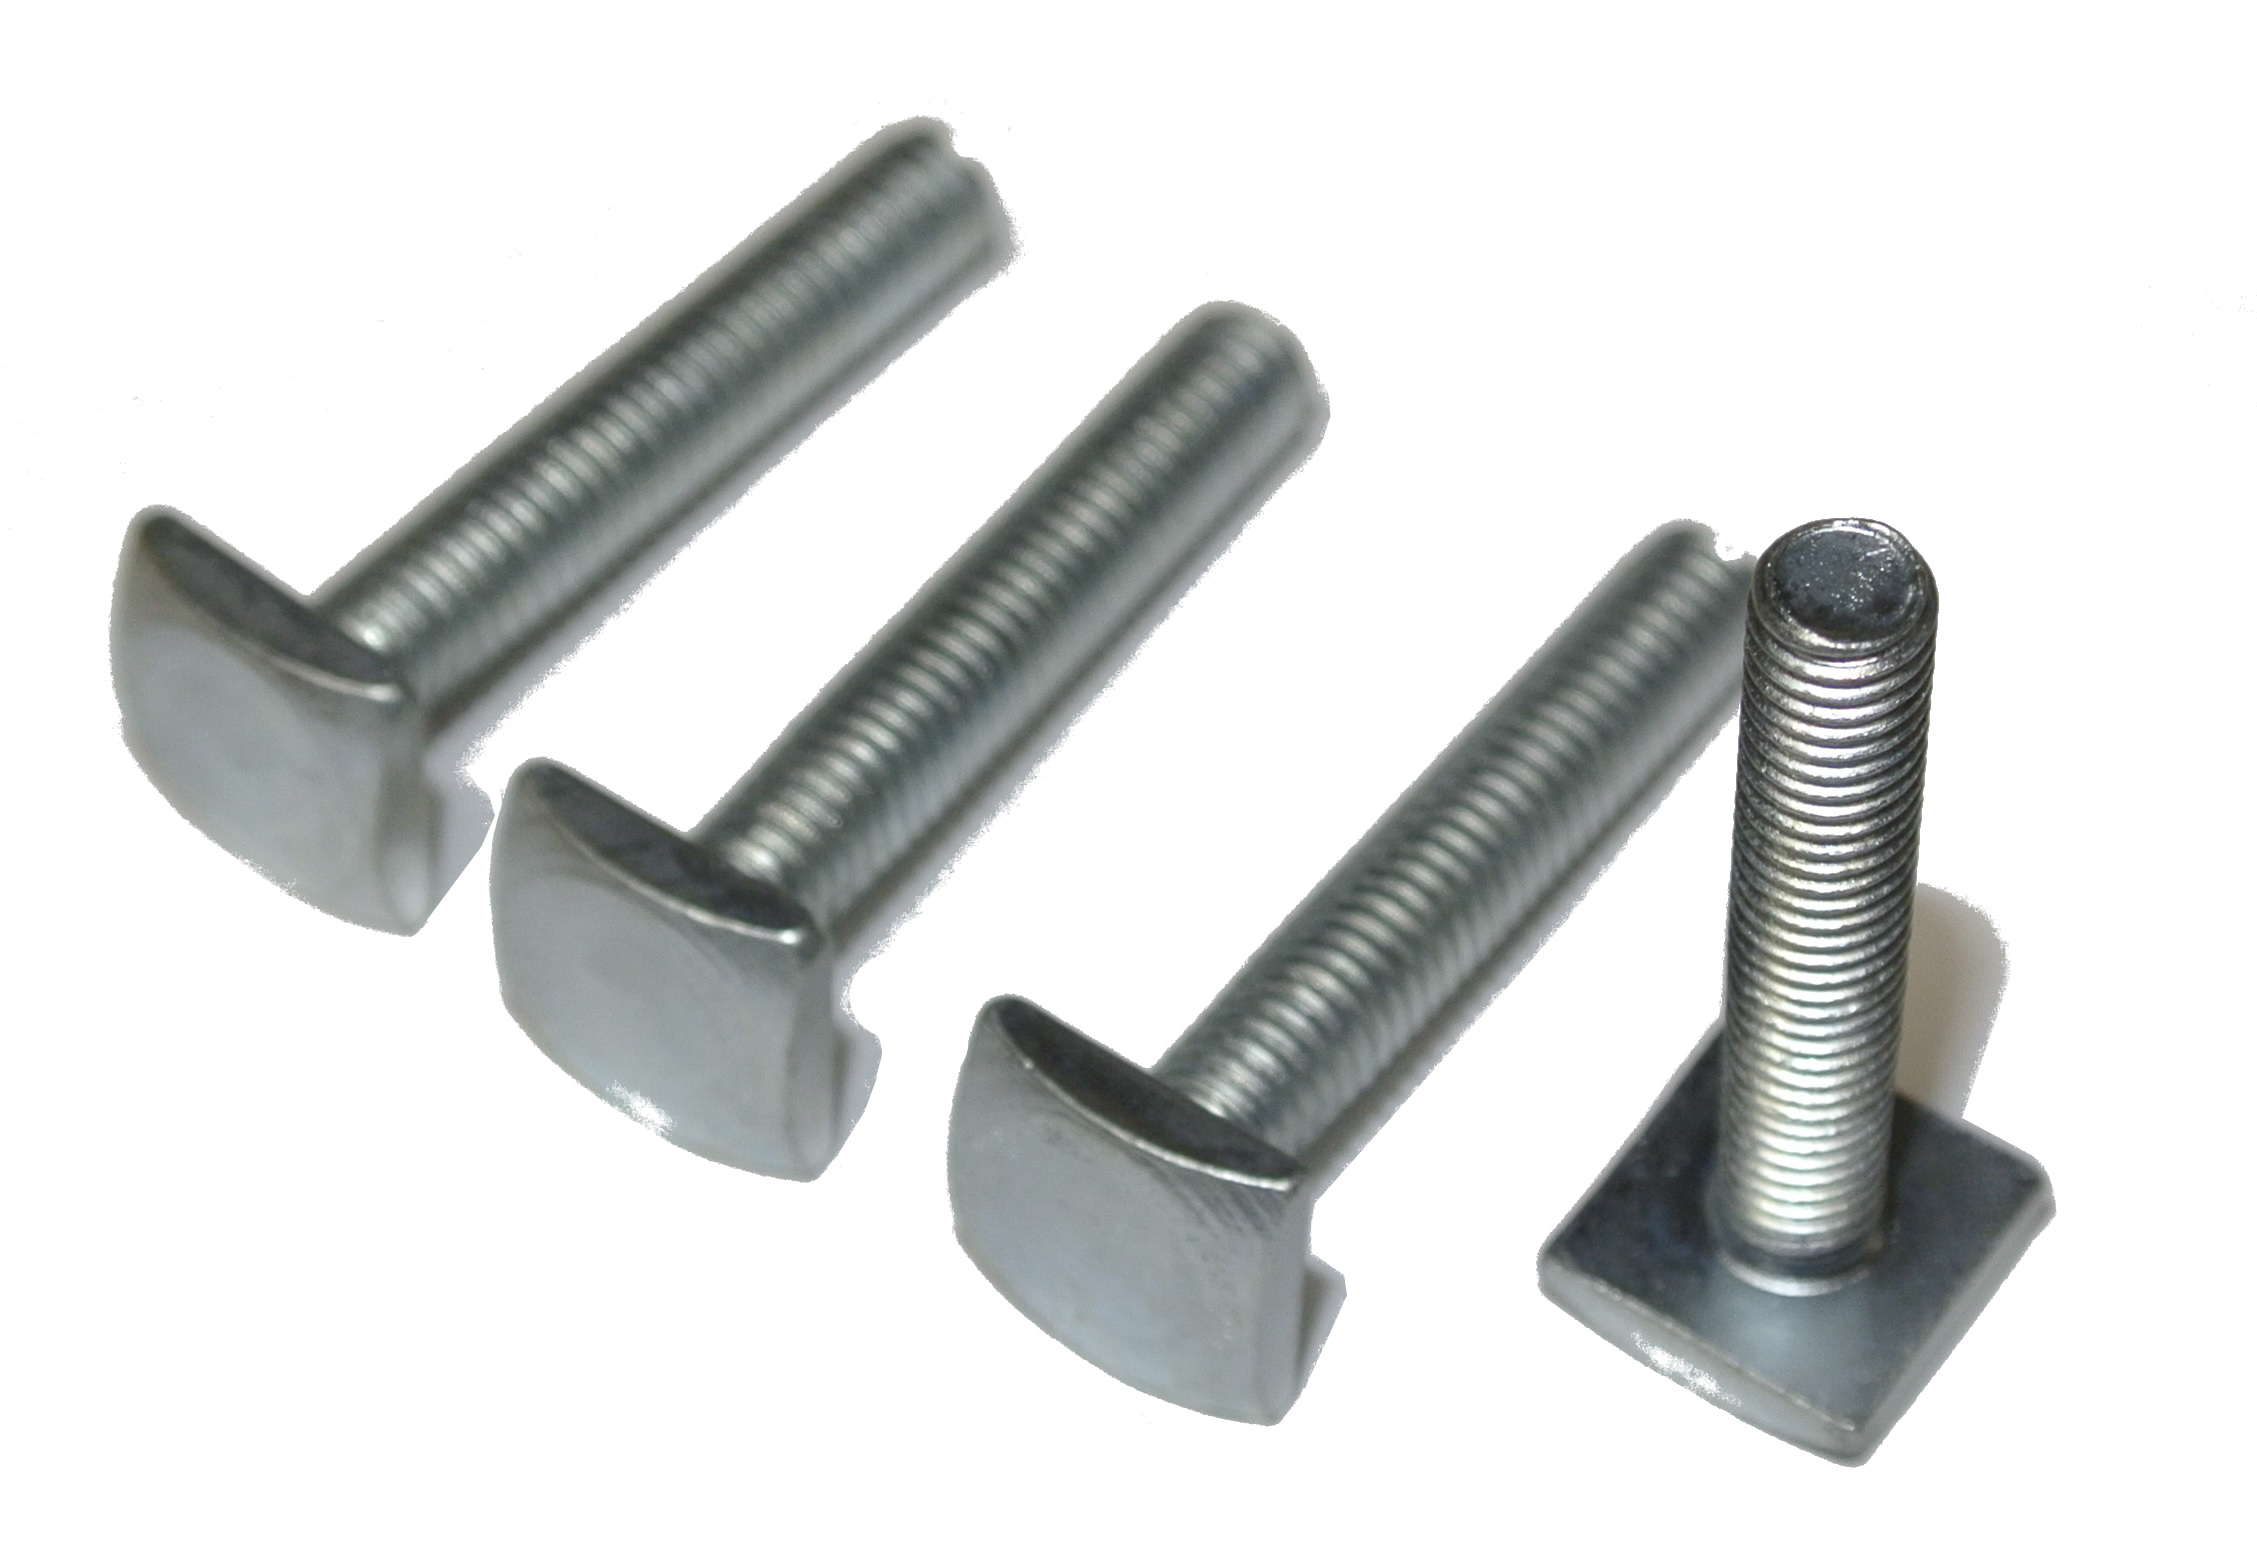 set of 4 slot nut t nut adapter m6x35 mm 12x12 mm for